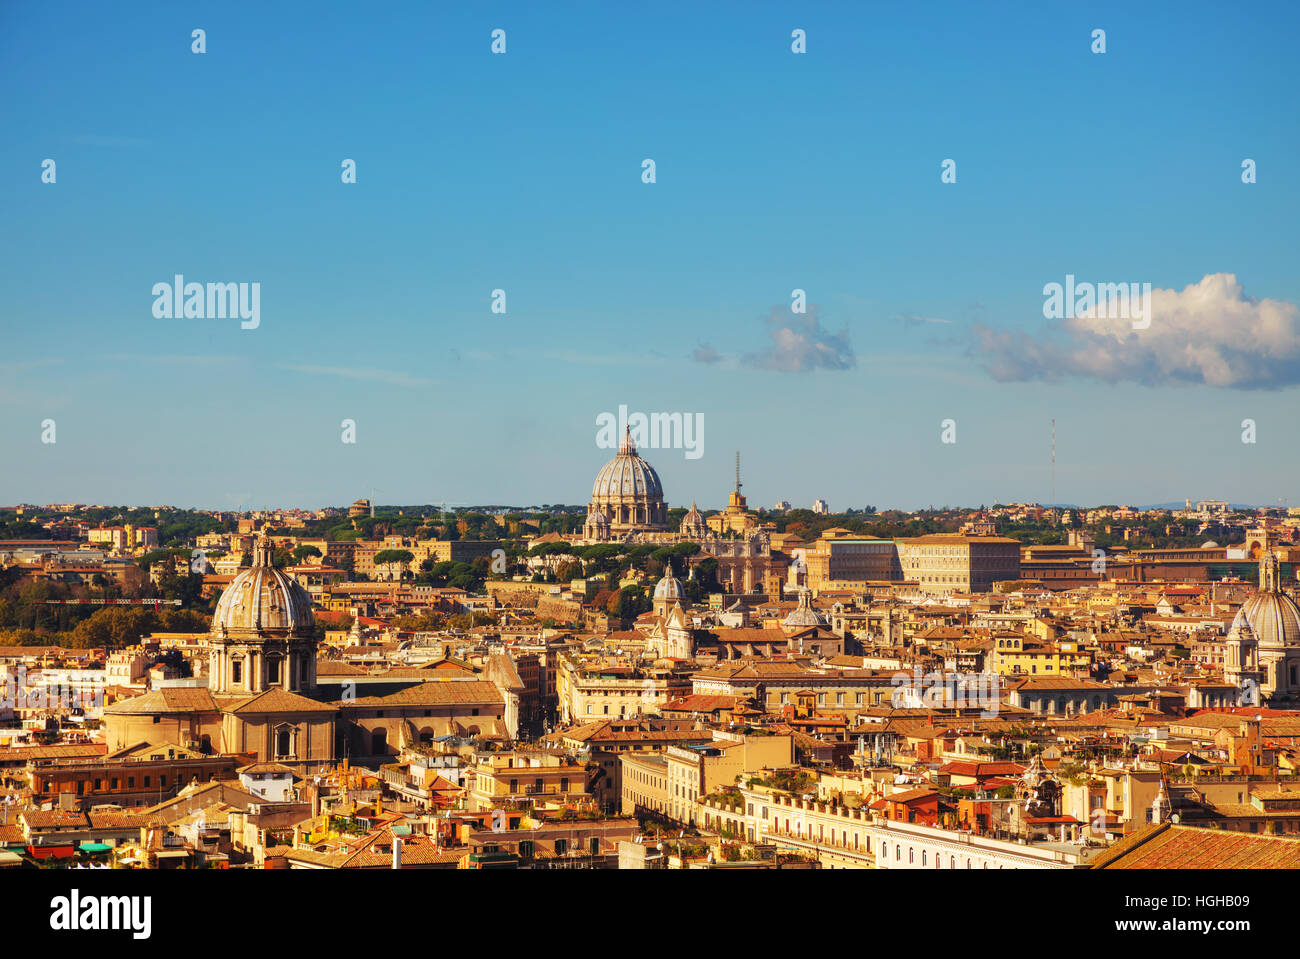 Rome aerial view with the Papal Basilica of St. Peter in the Vatican city - Stock Image